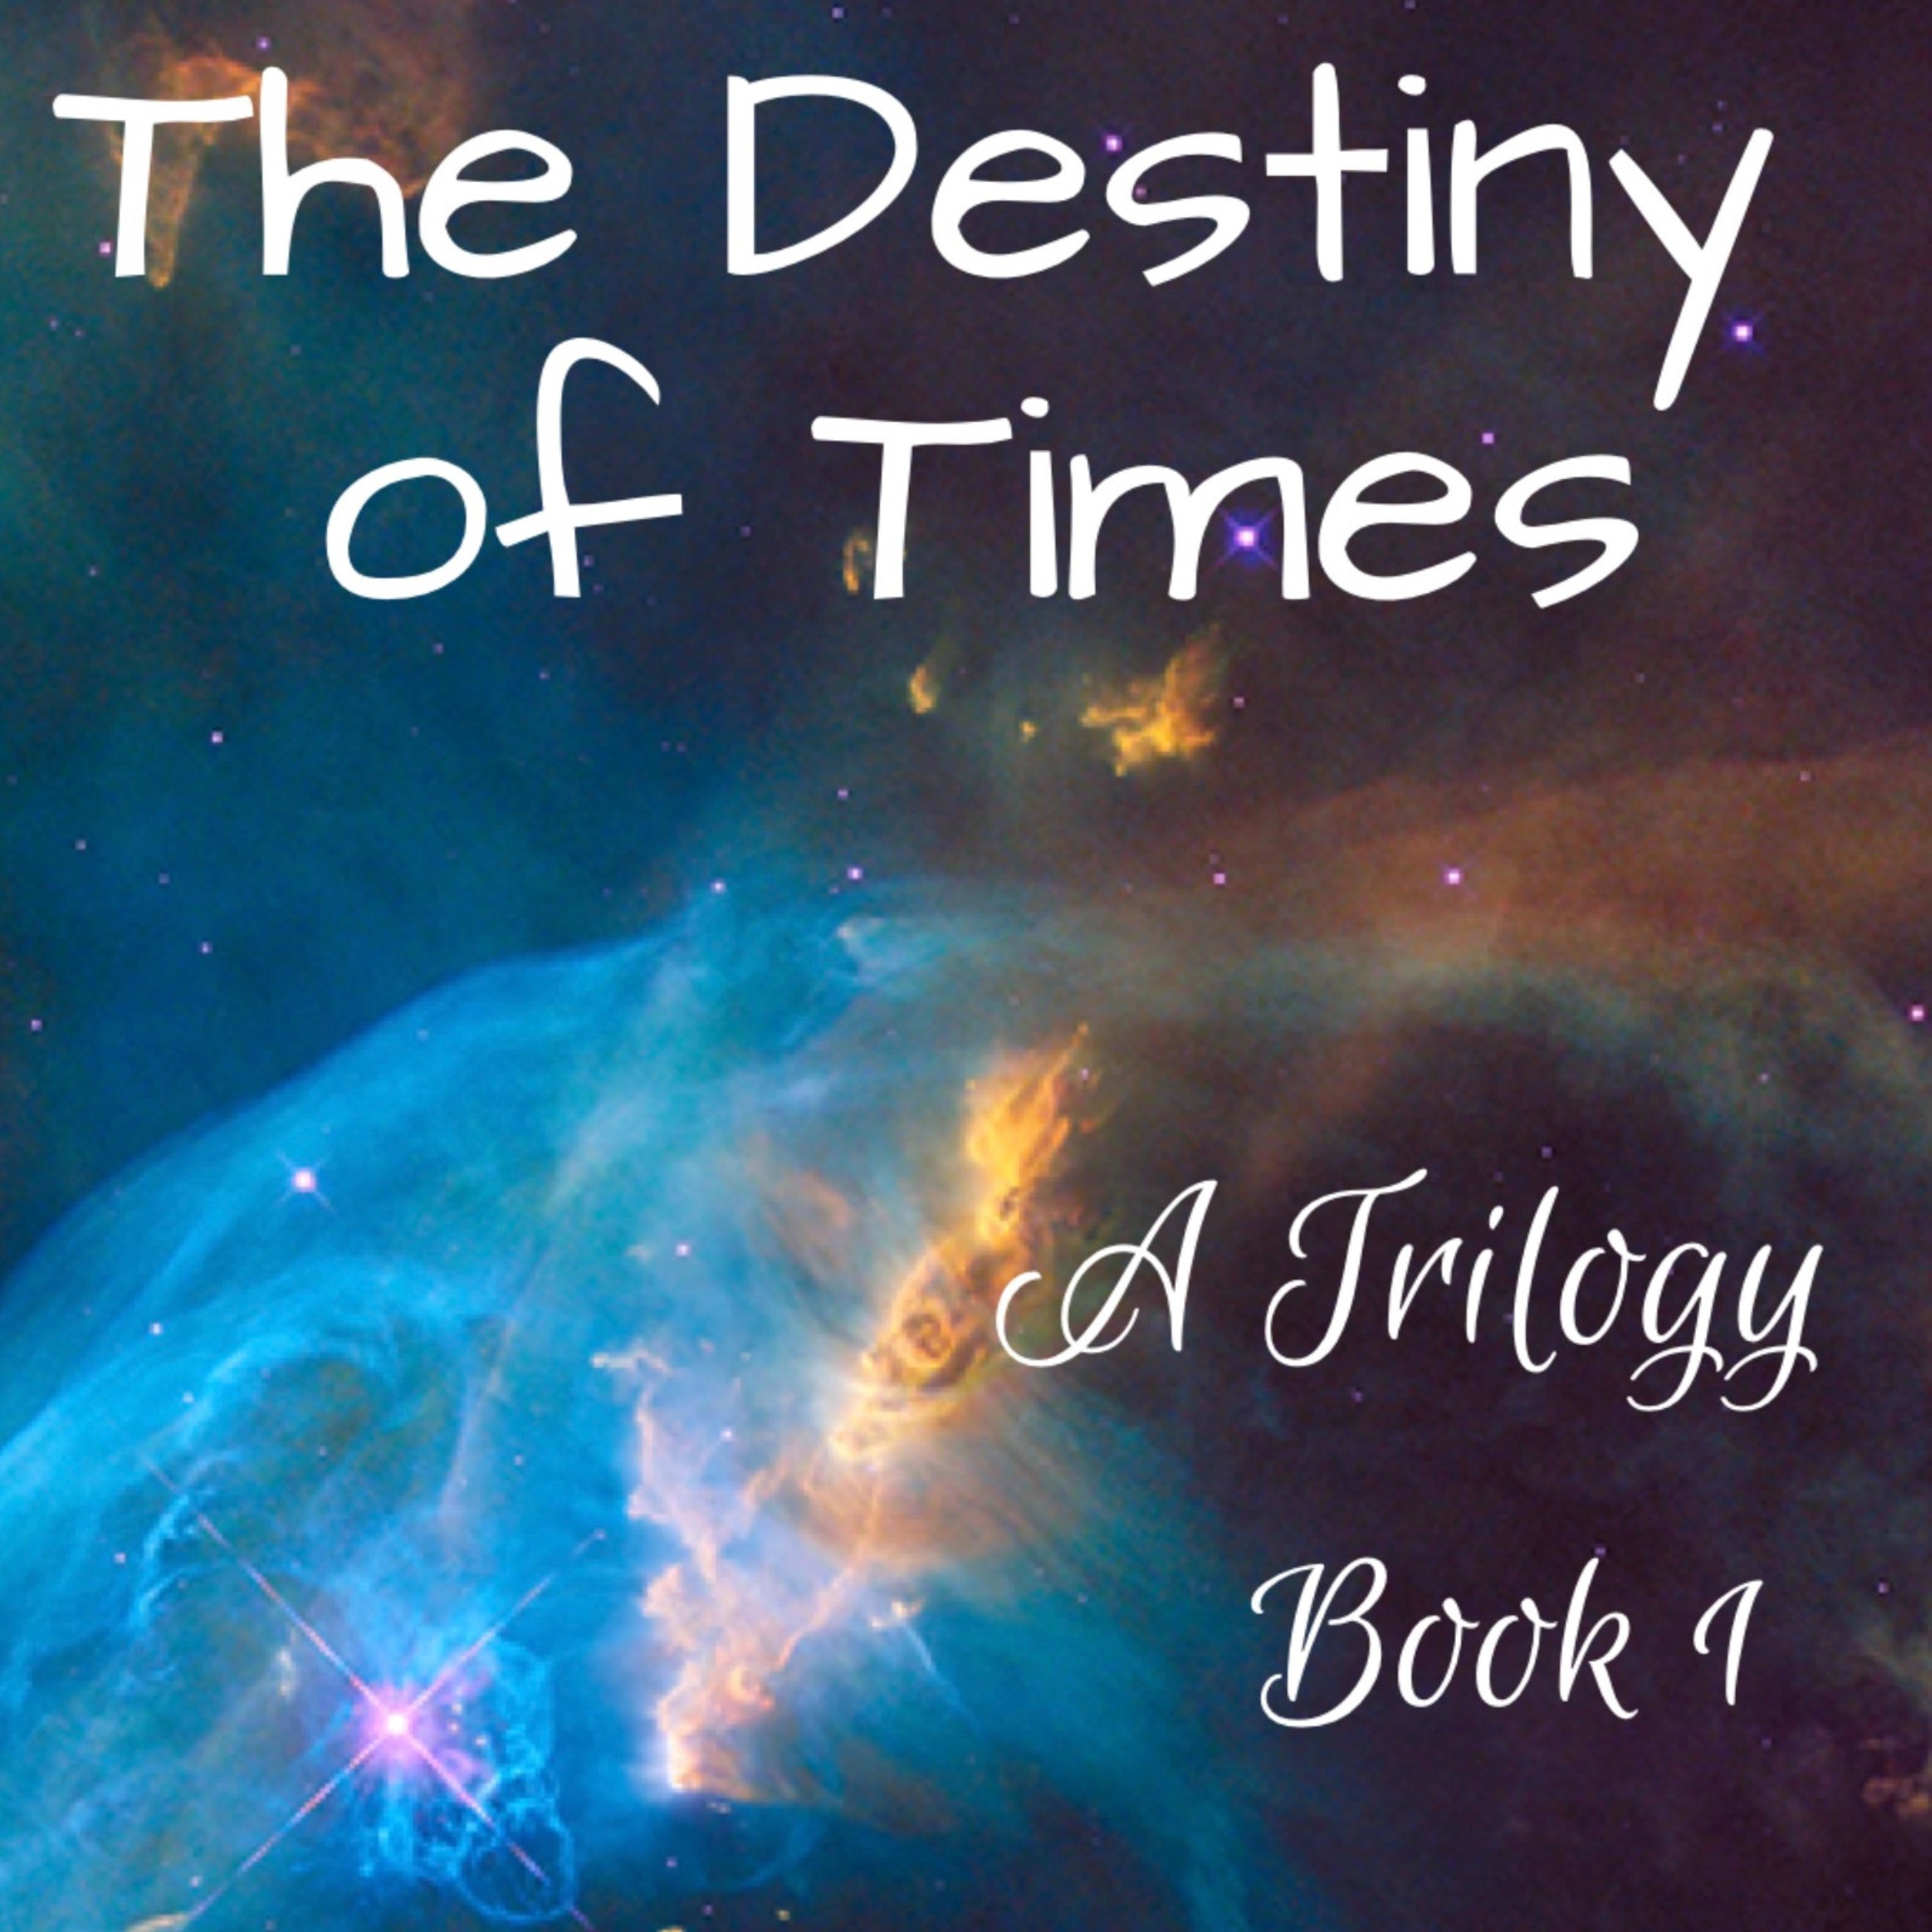 The Destiny of Times